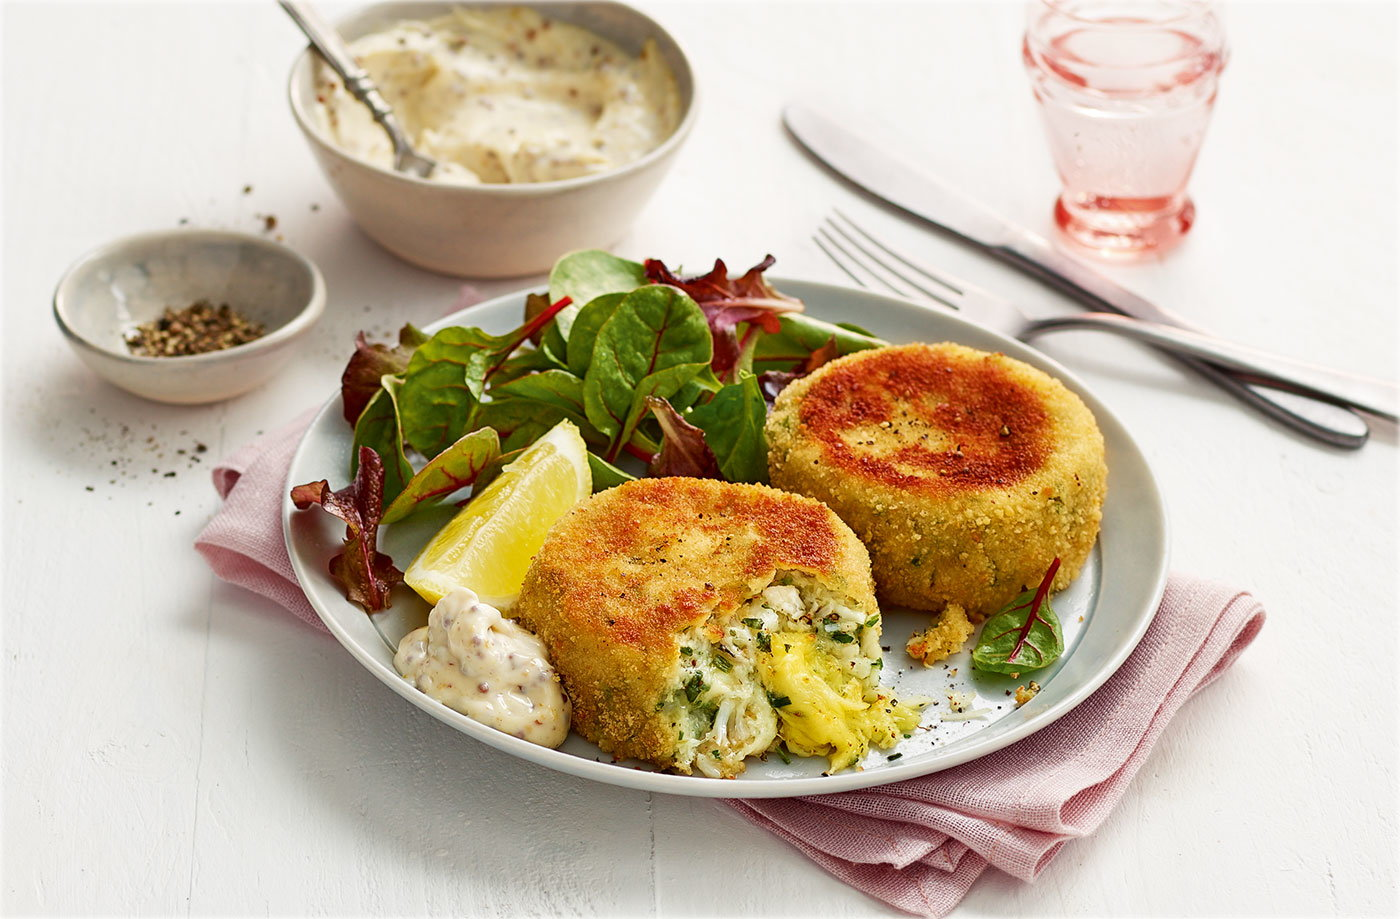 Jane's fishcakes 'for two, or one' recipe